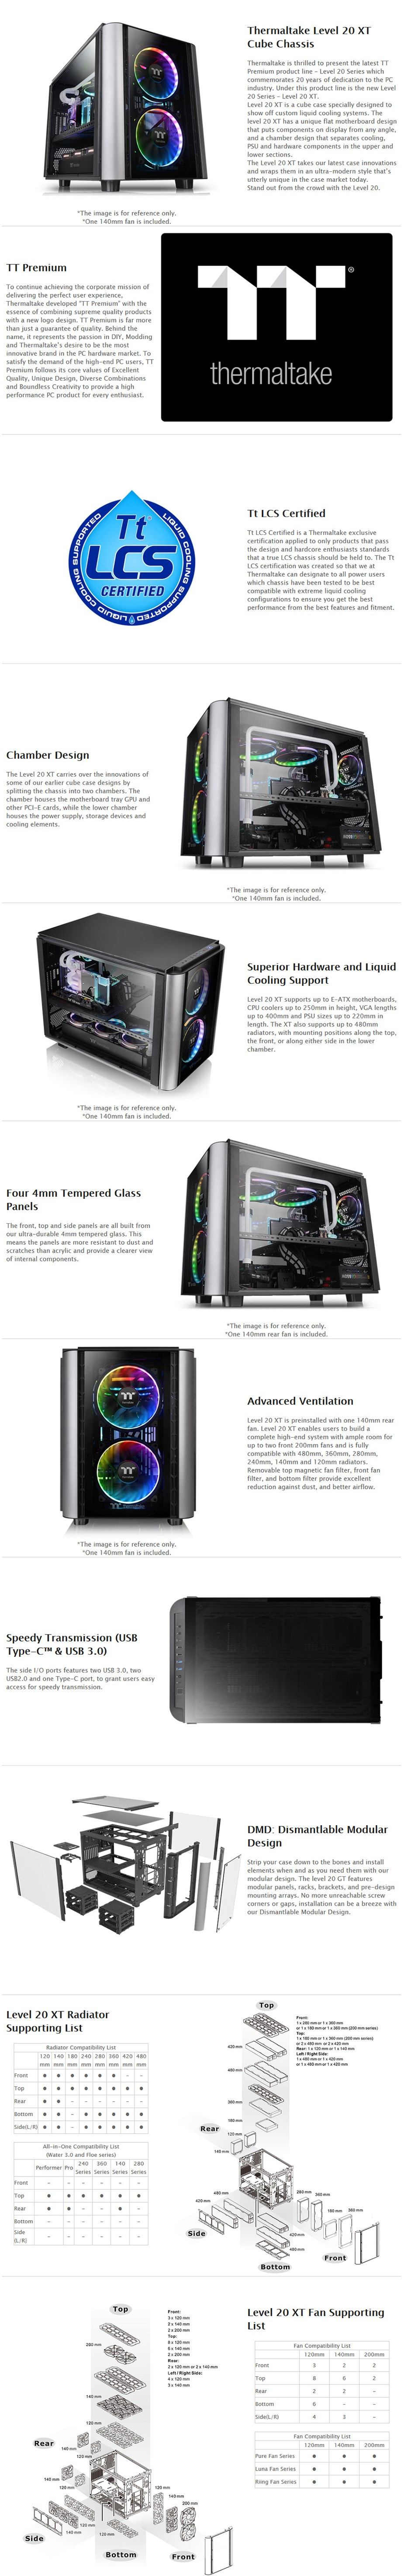 Thermaltake Level 20 XT Tempered Glass E-ATX Cube Case - Desktop Overview